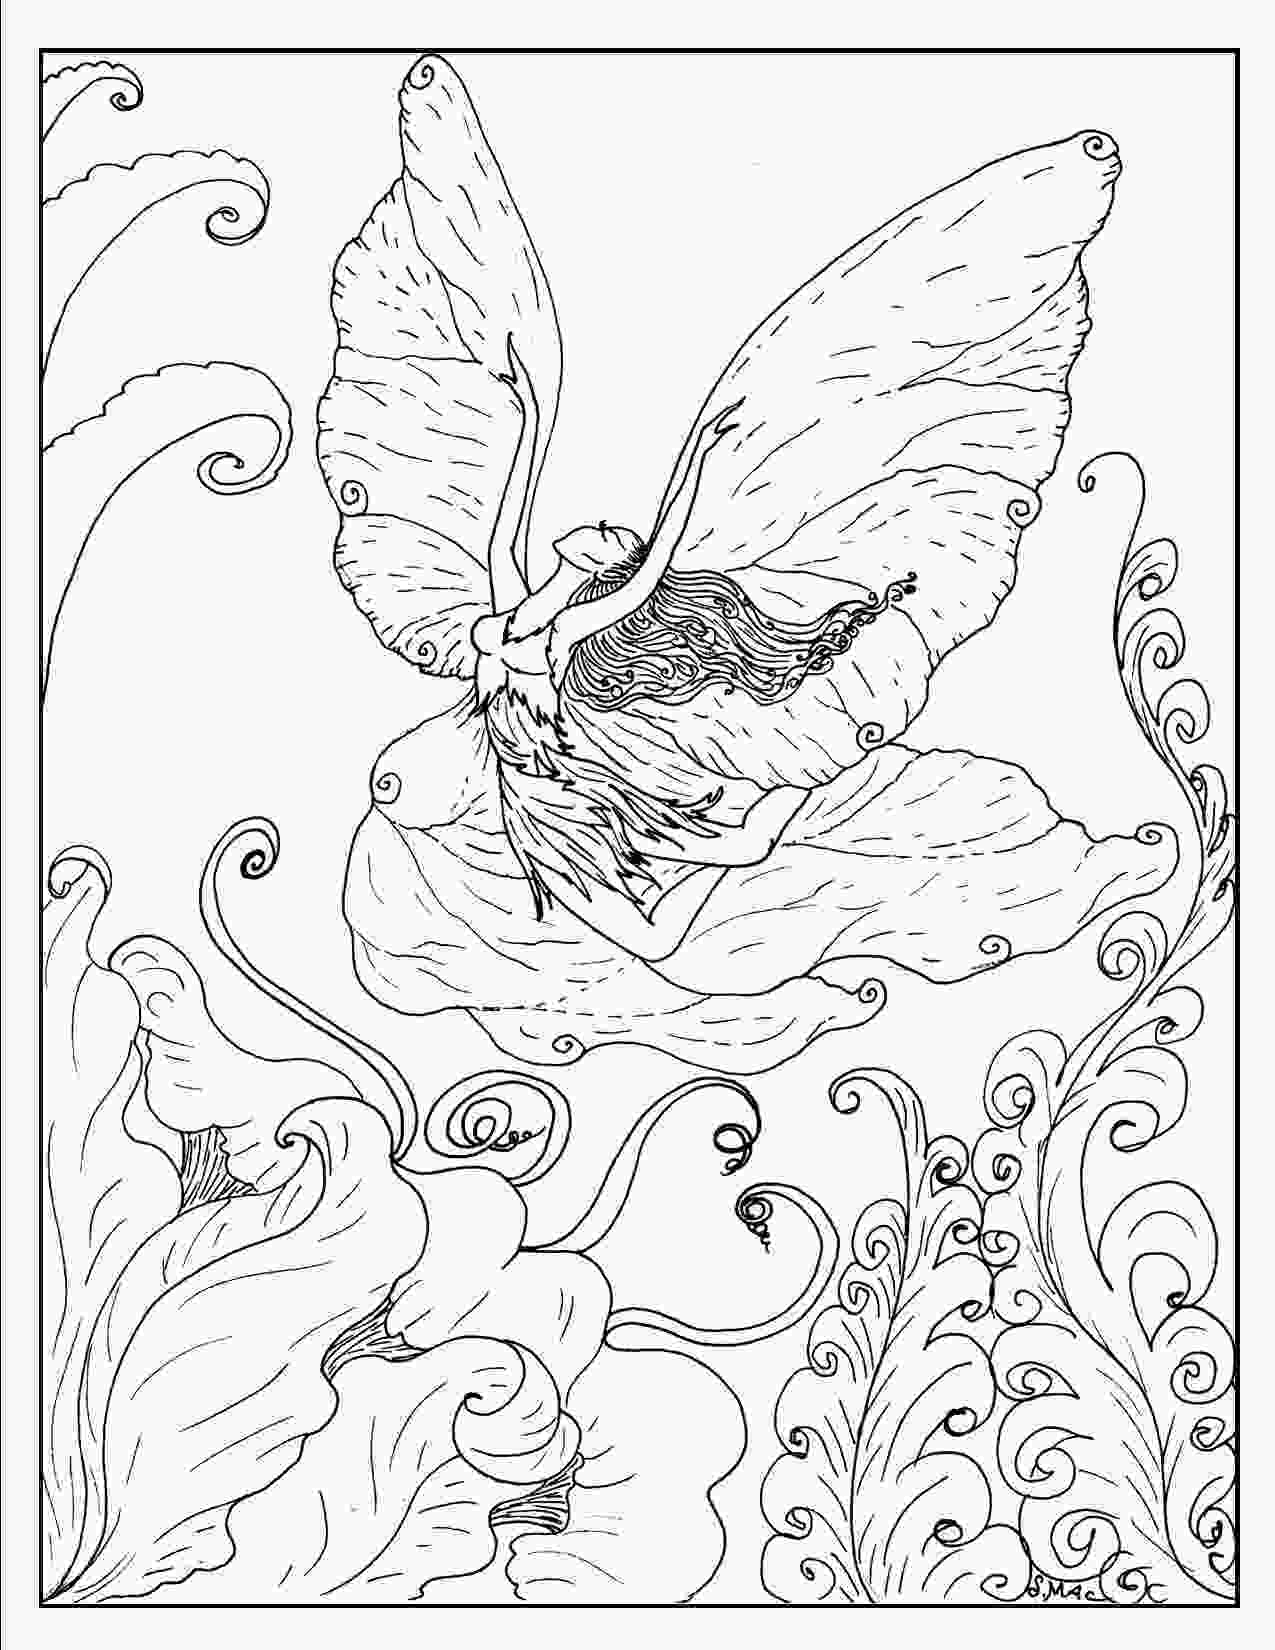 hard advanced mermaid coloring pages free printable fantasy coloring pages for kids best